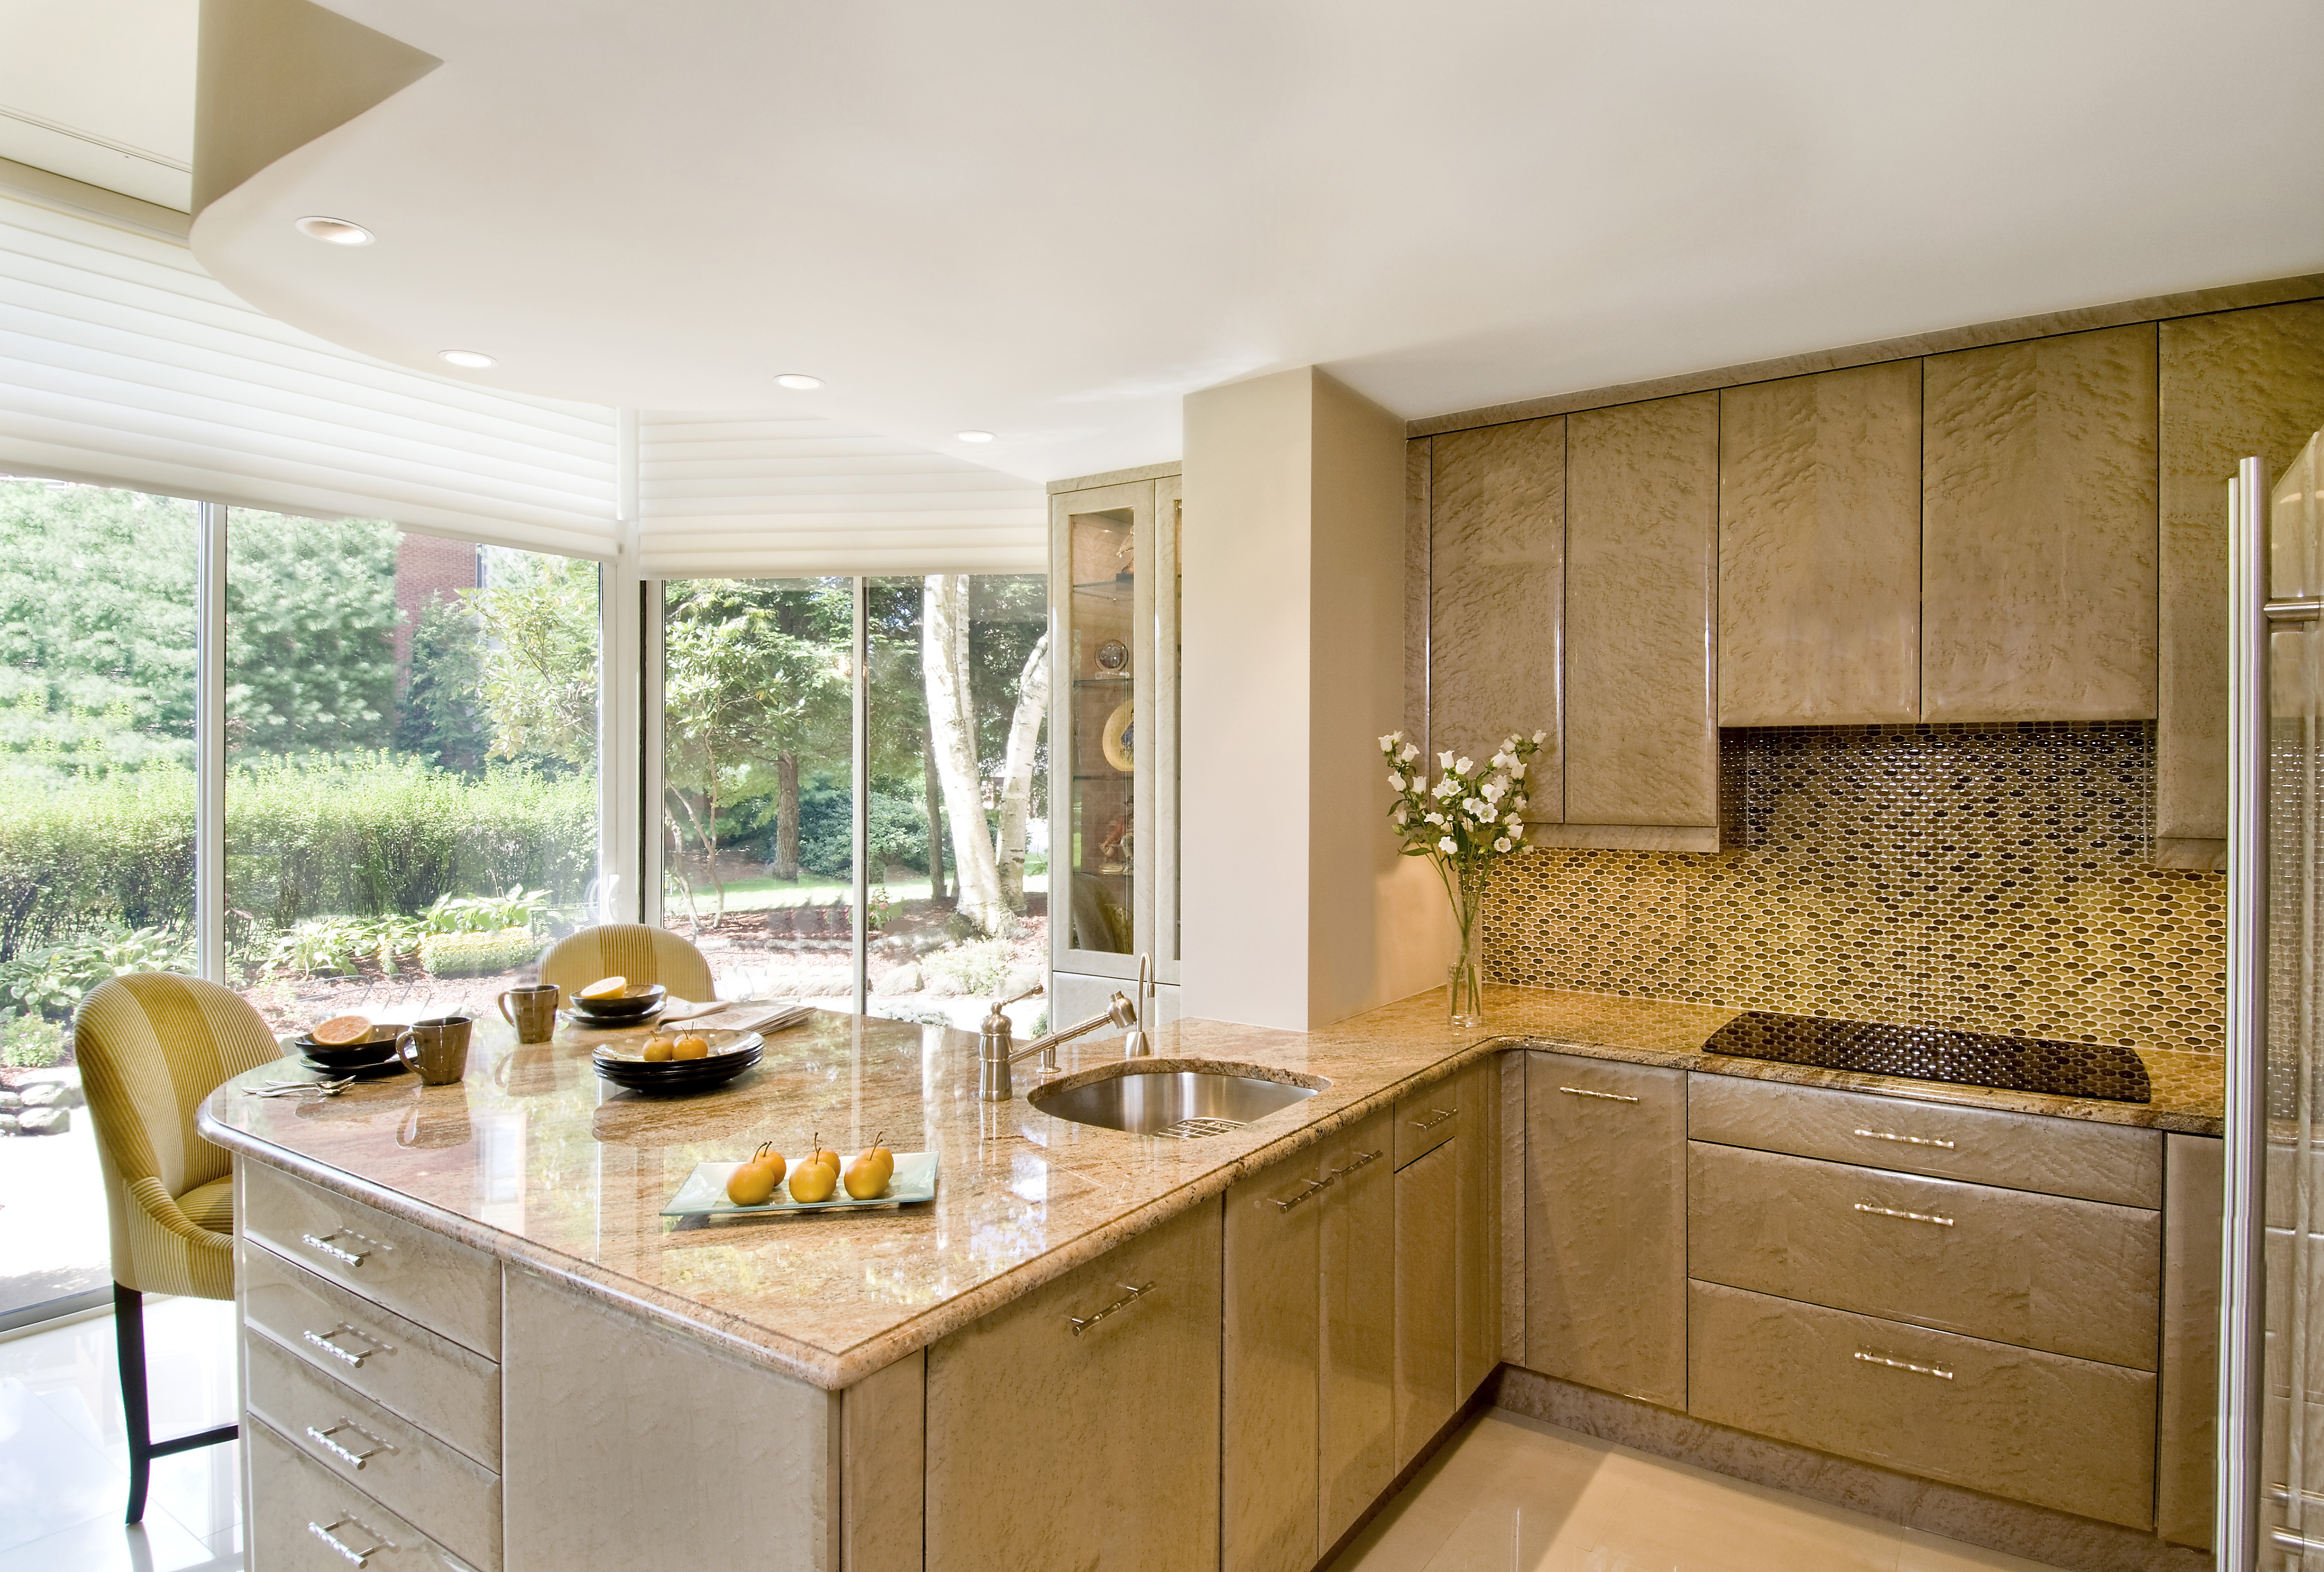 Bright luxurious kitchen counters and cabinets